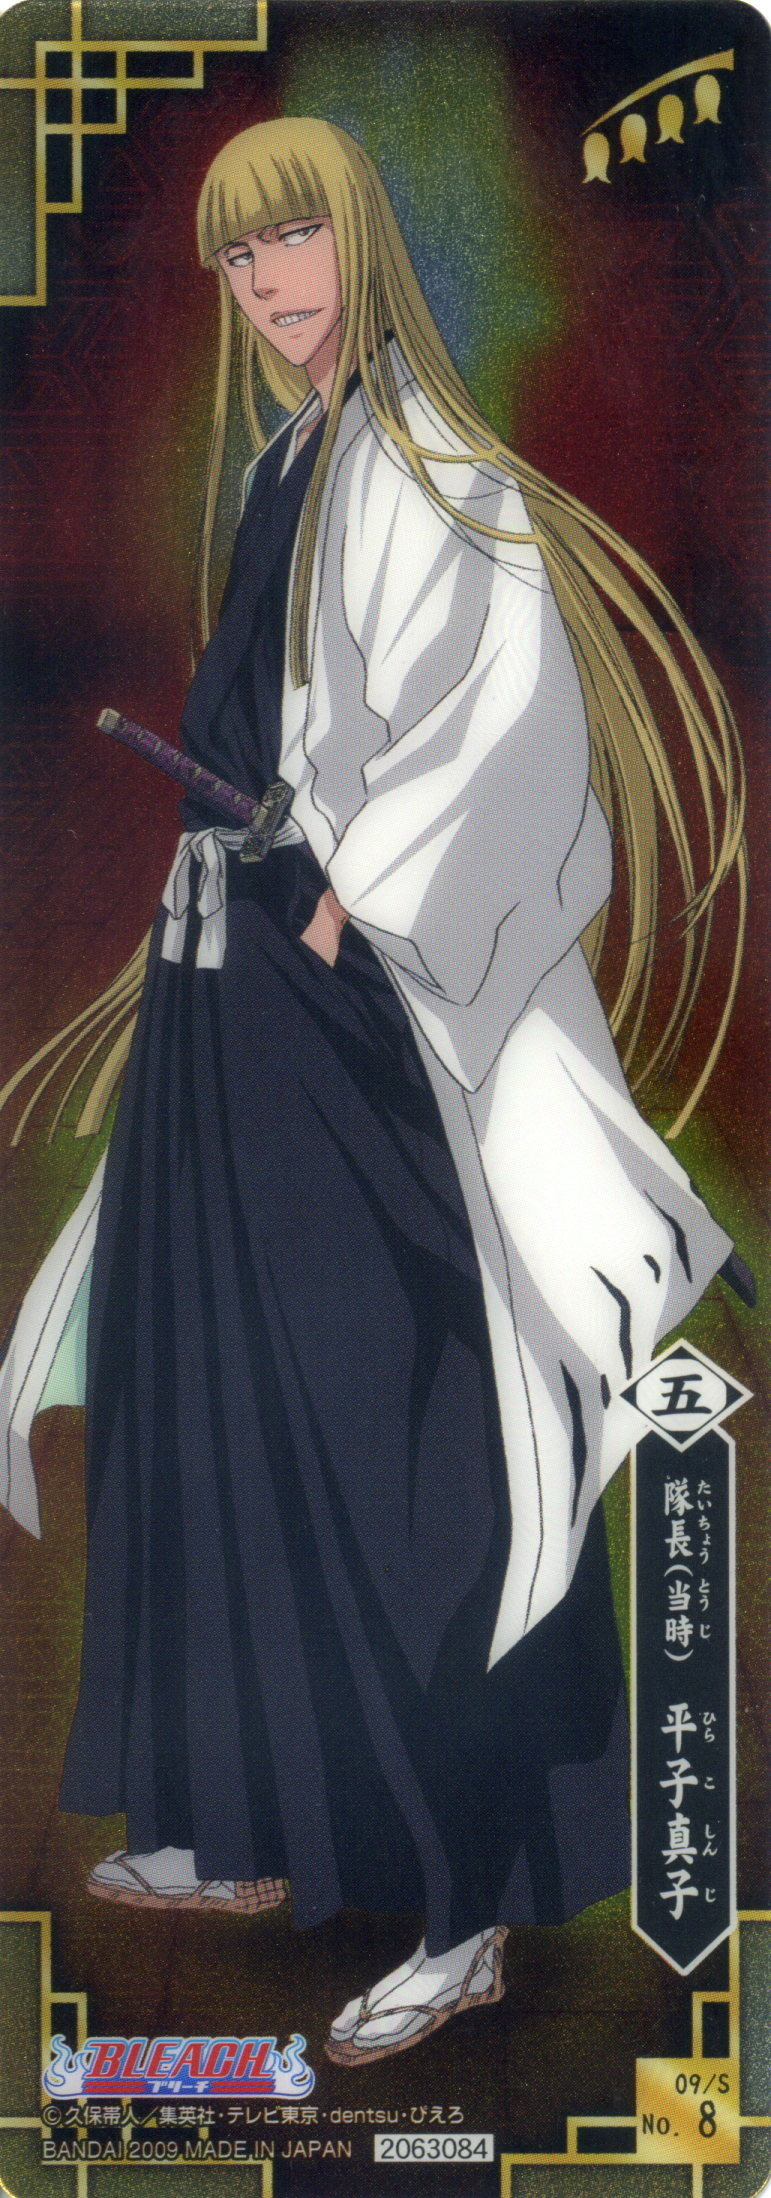 Bleach: Shinji - Images